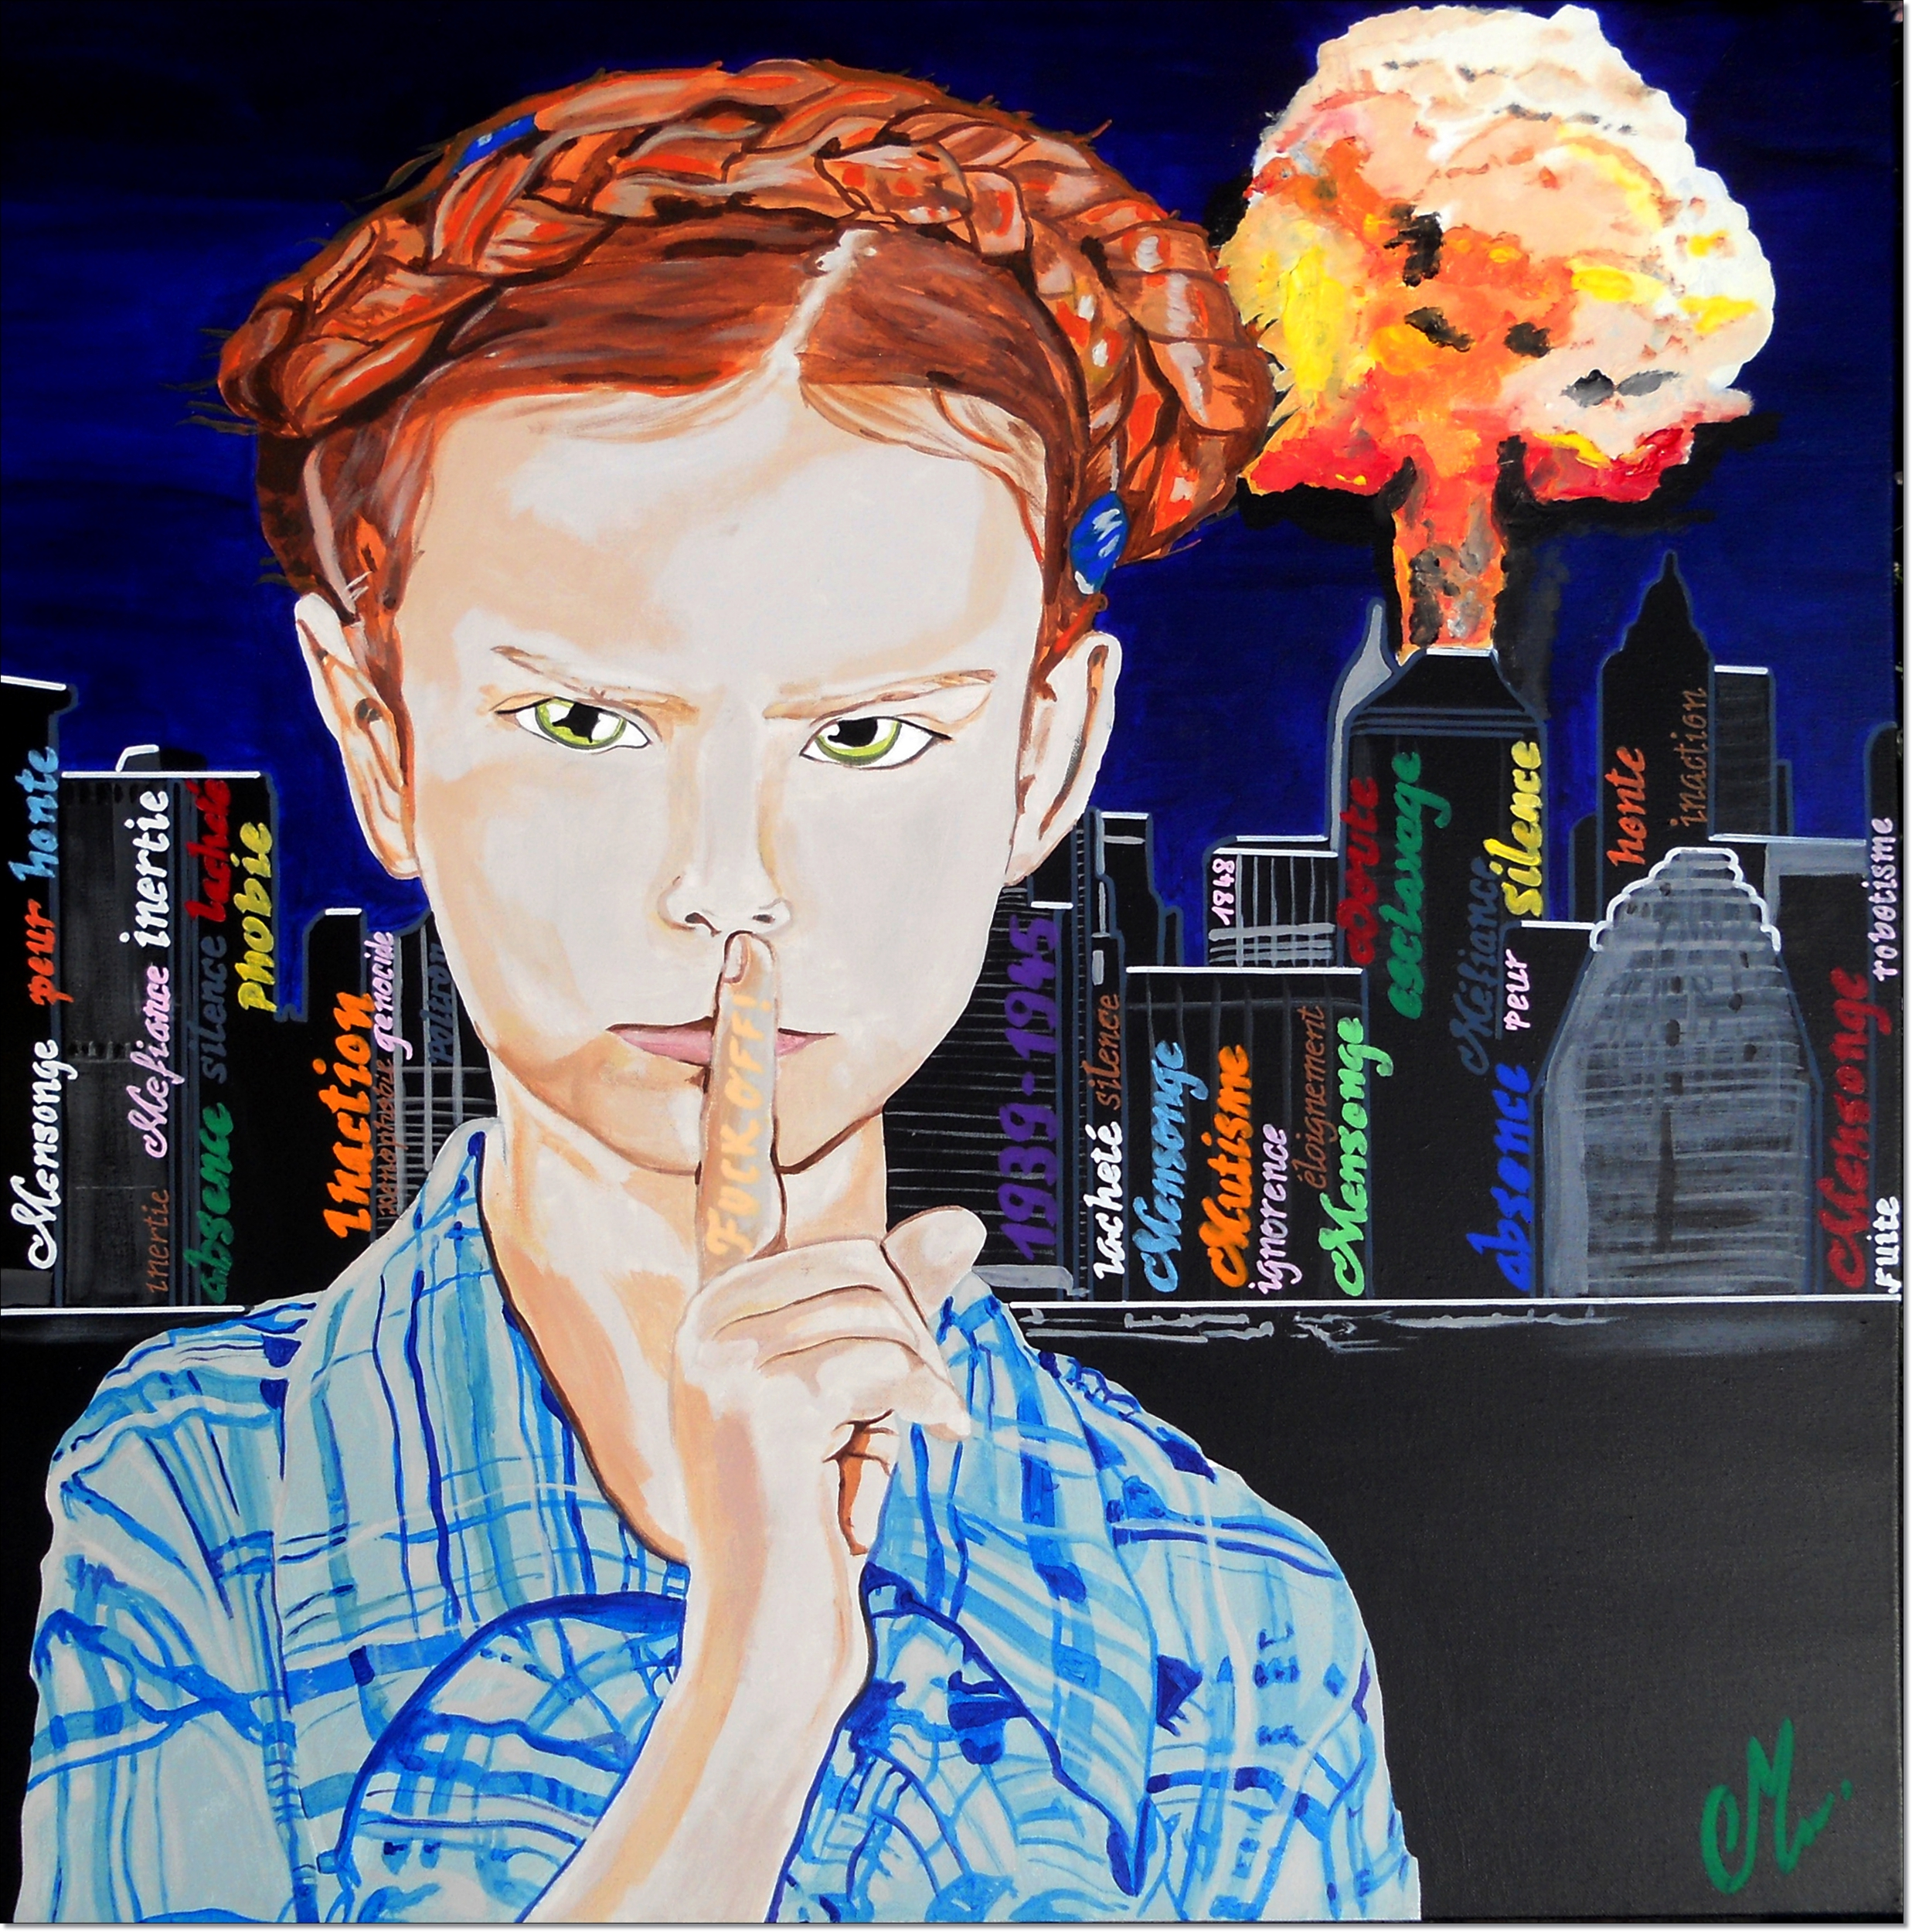 Contemporary painting generation disappointed laziness